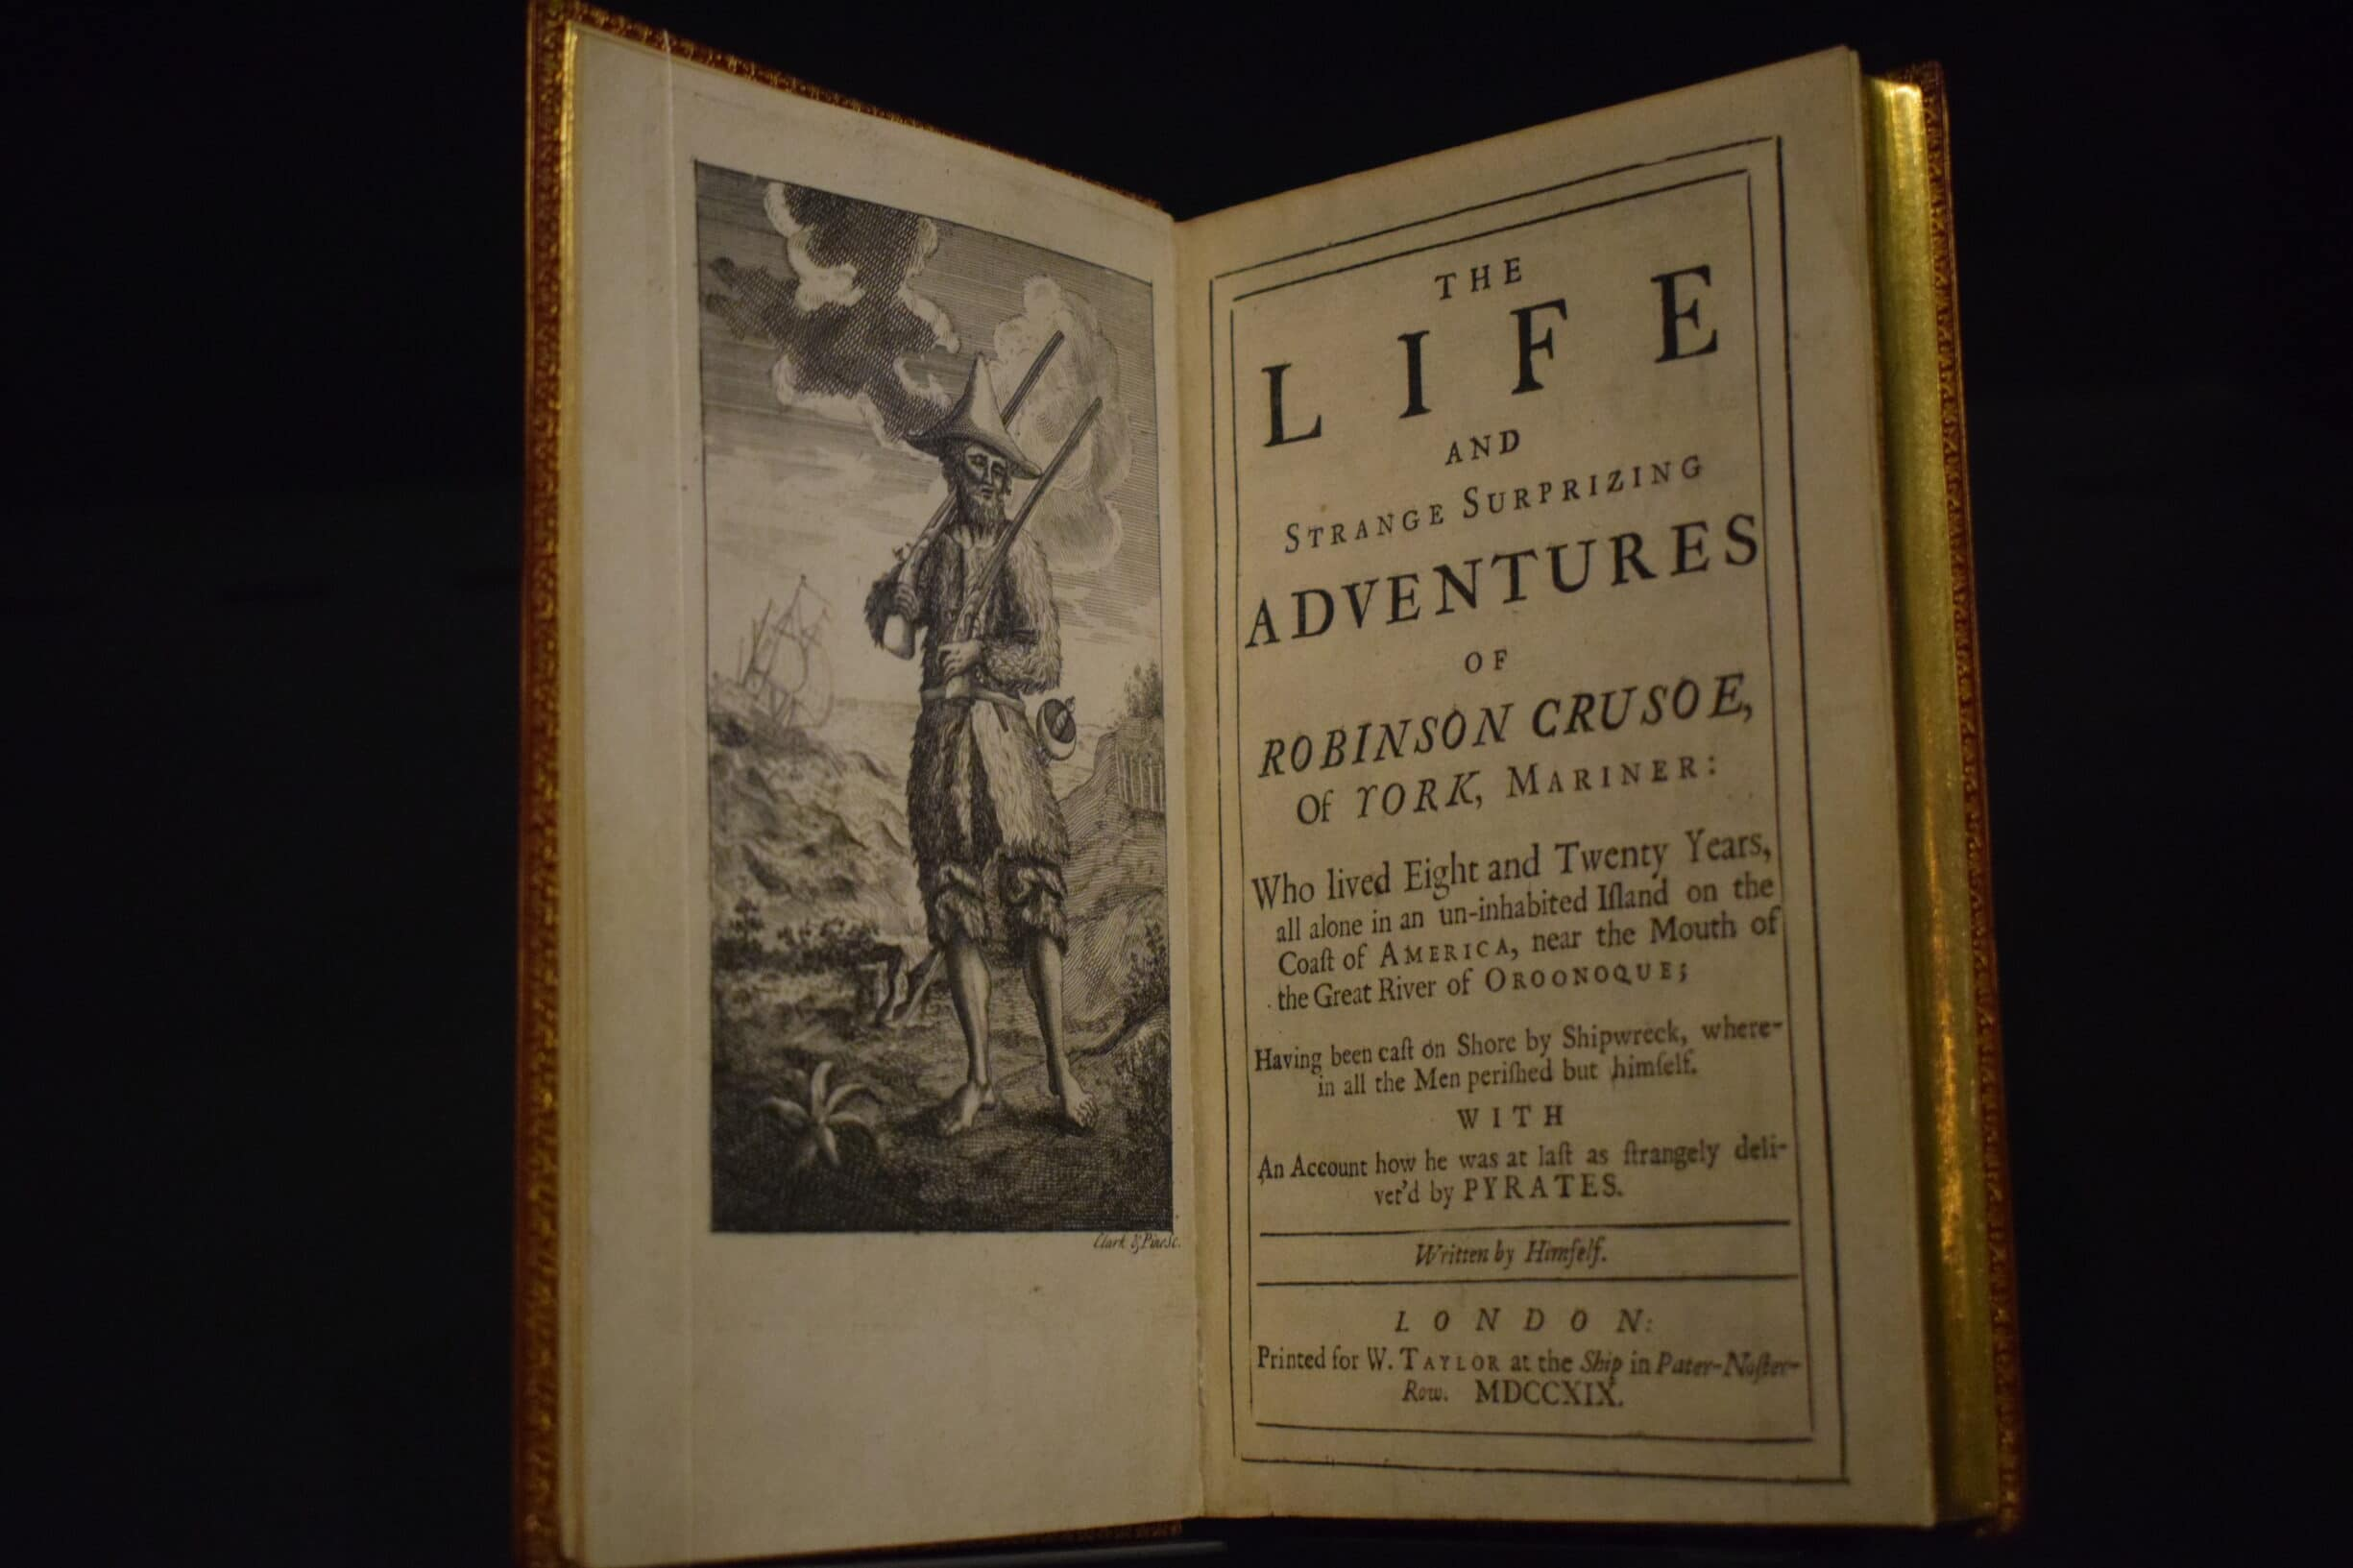 «The Life and Strange Surprizing Adventures of Robinson Crusoe» by Daniel Defoe (1660-1731). London, 1719, original edition. Foundation Martin Bodmer. Photo: Deniev Dagun. (CC BY 4.0).